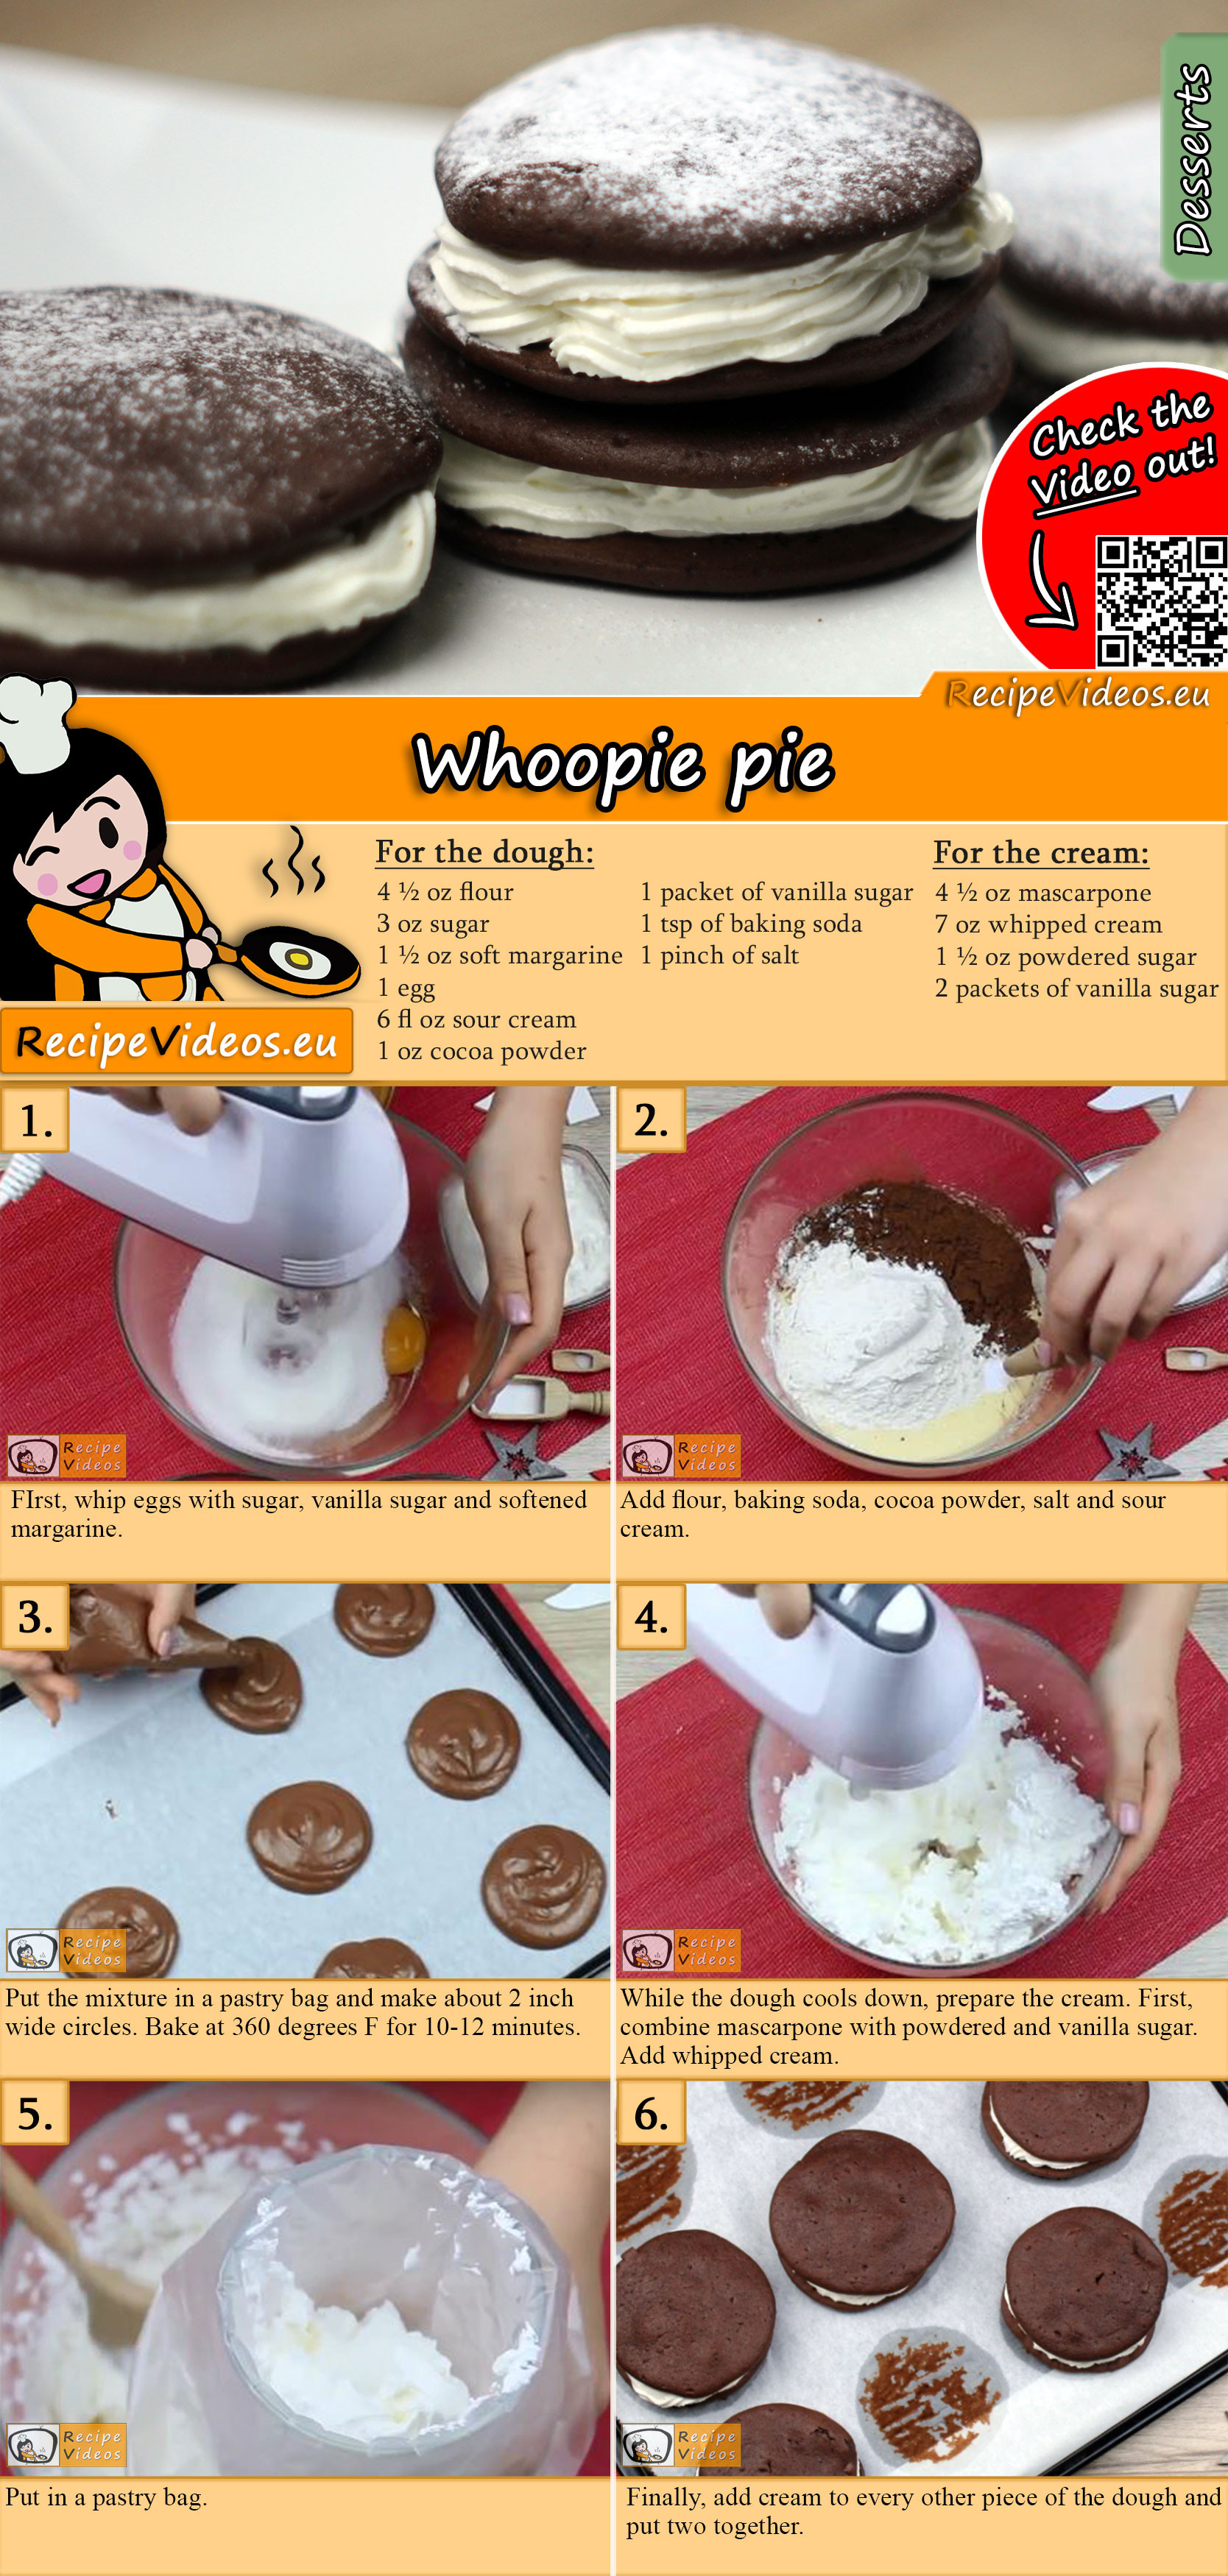 Whoopie pie recipe with video